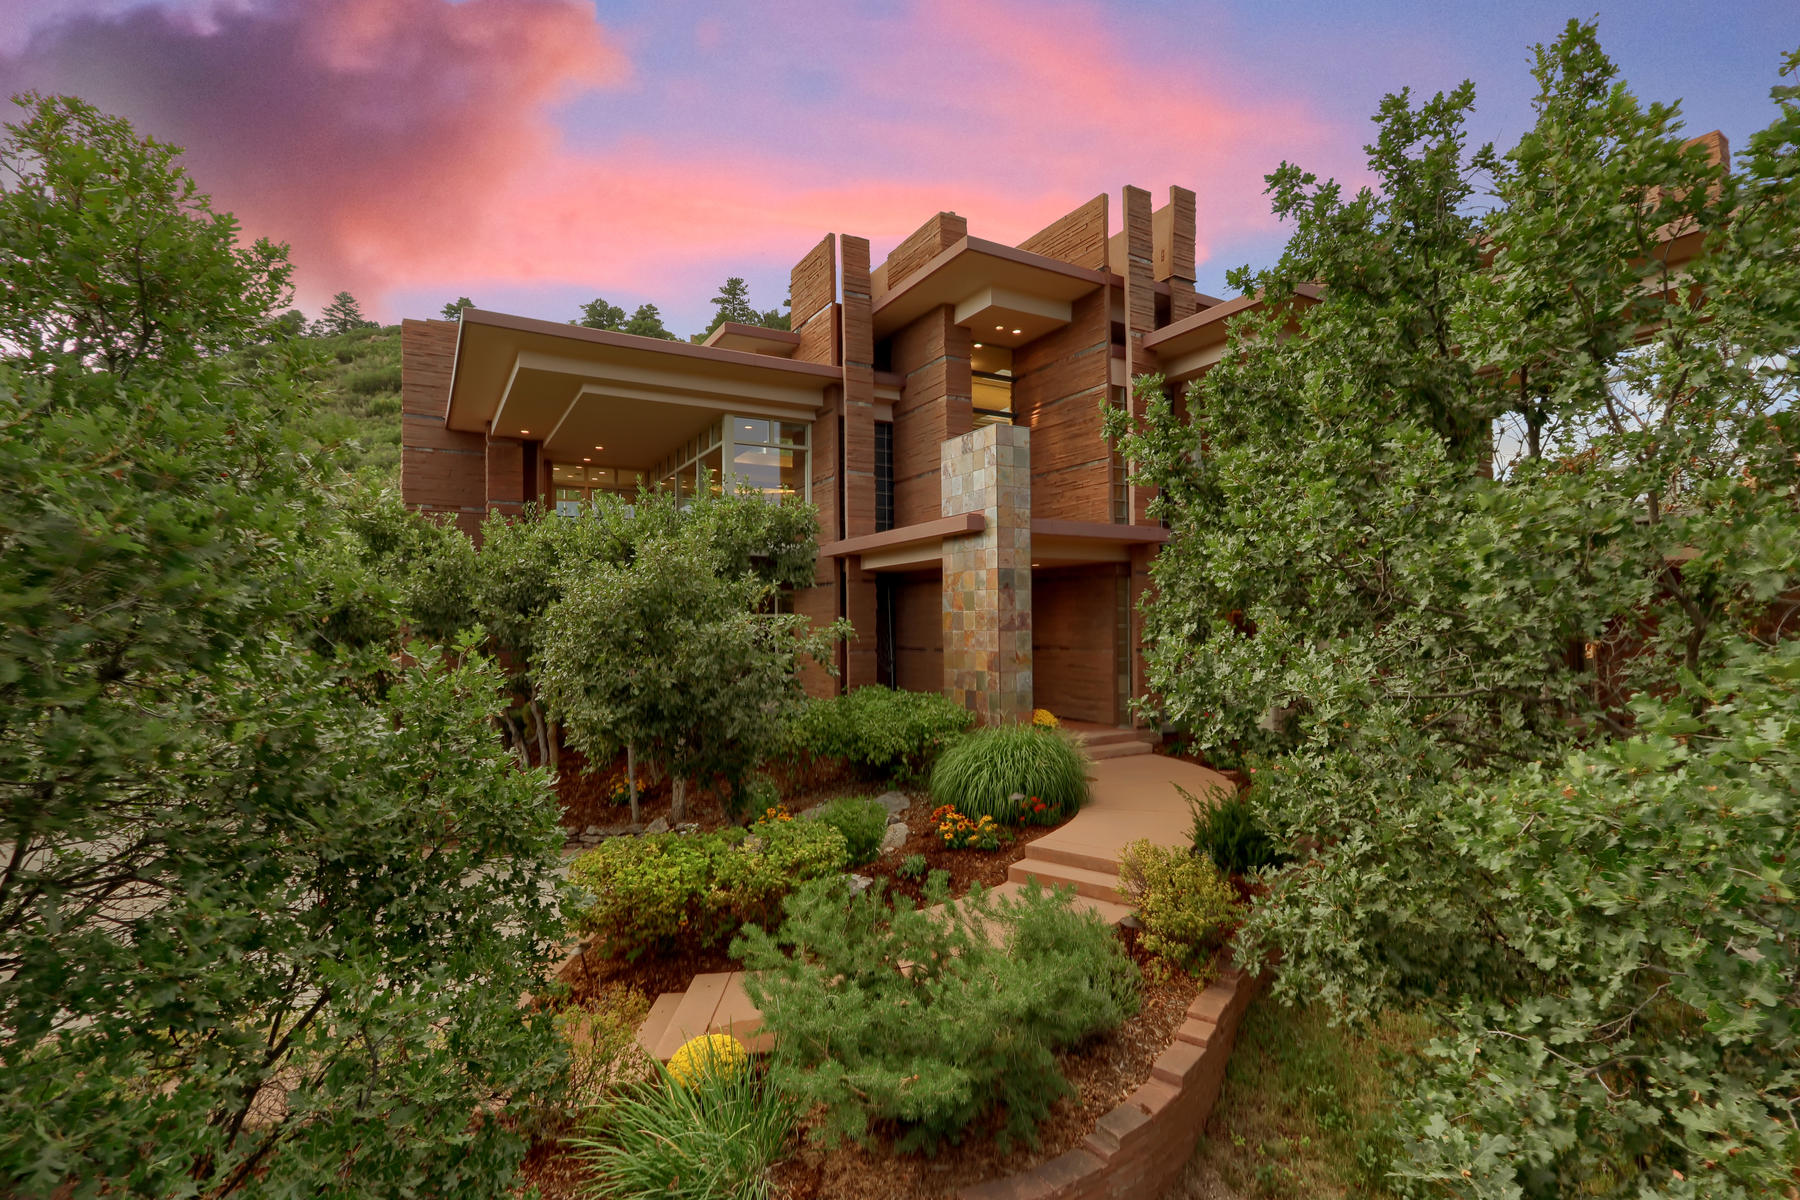 Single Family Homes for Sale at 2 Borealis Way Castle Rock, Colorado 80108 United States